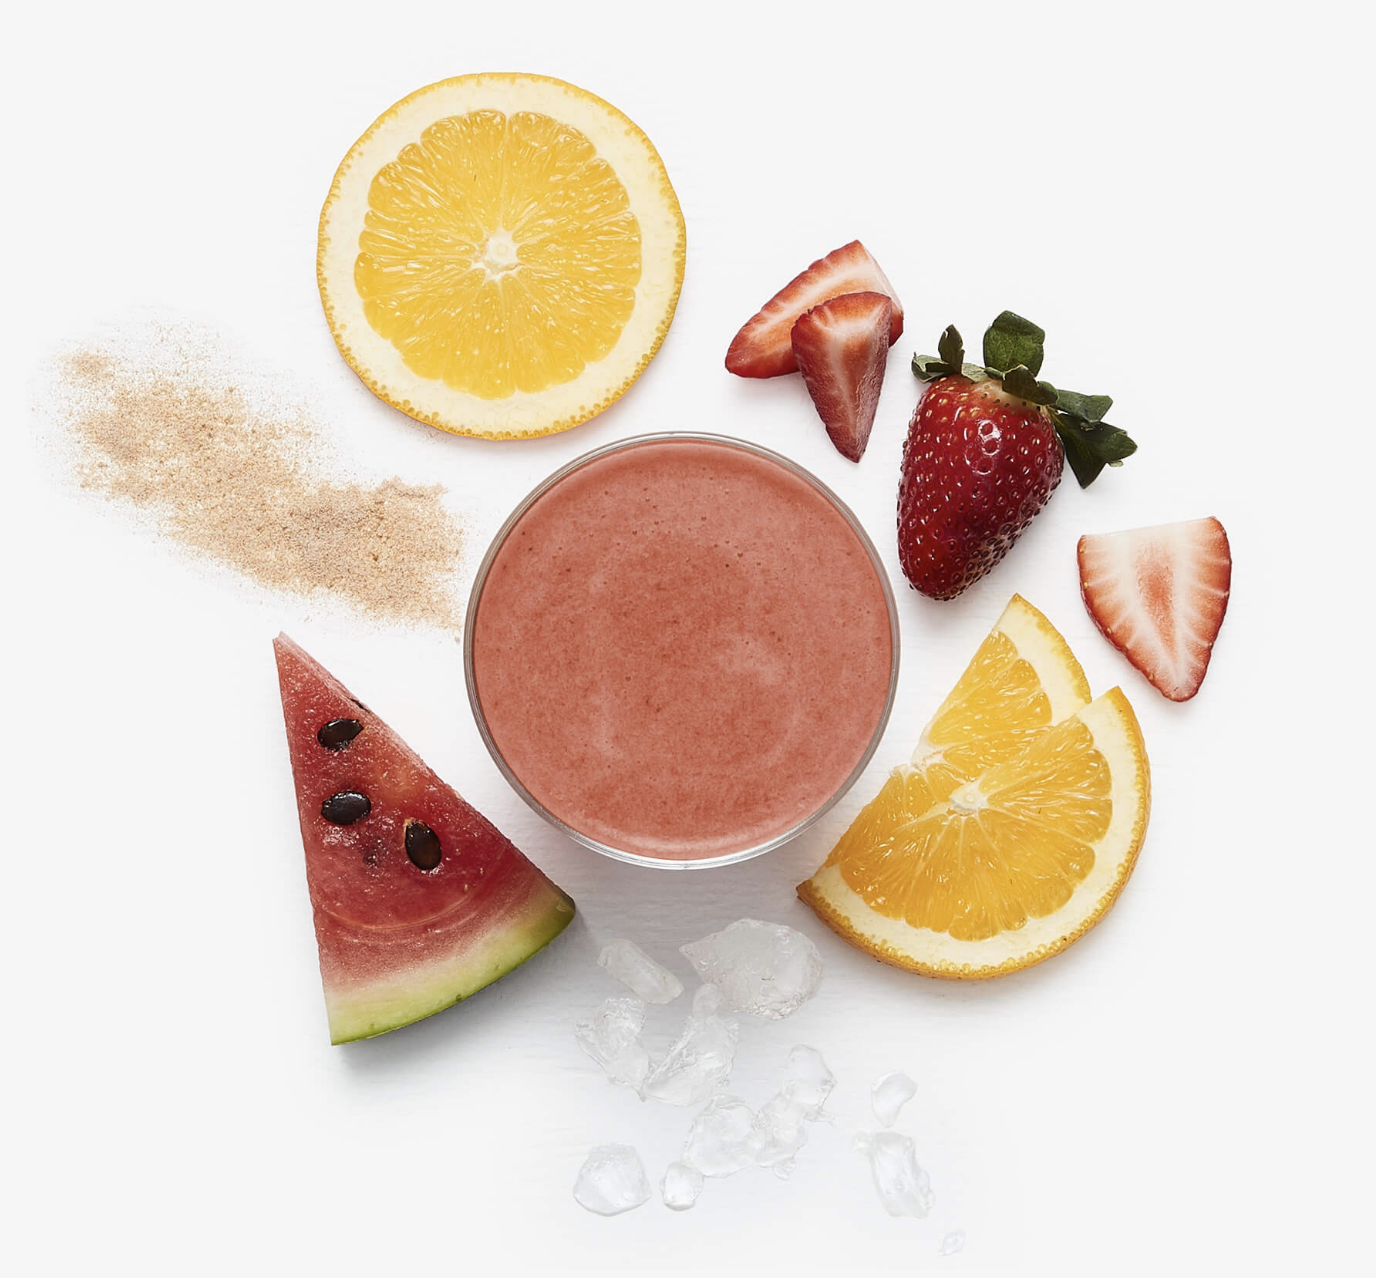 #5 Immunity Juice - This juice is perfect for if you're feeling a little under the weather. You'll be able to taste Strawberries, Freshly Squeezed Orange & Freshly Juiced Watermelon all to help boost your immune system. They've also added Immunity Booster to give your immune system an extra boost.